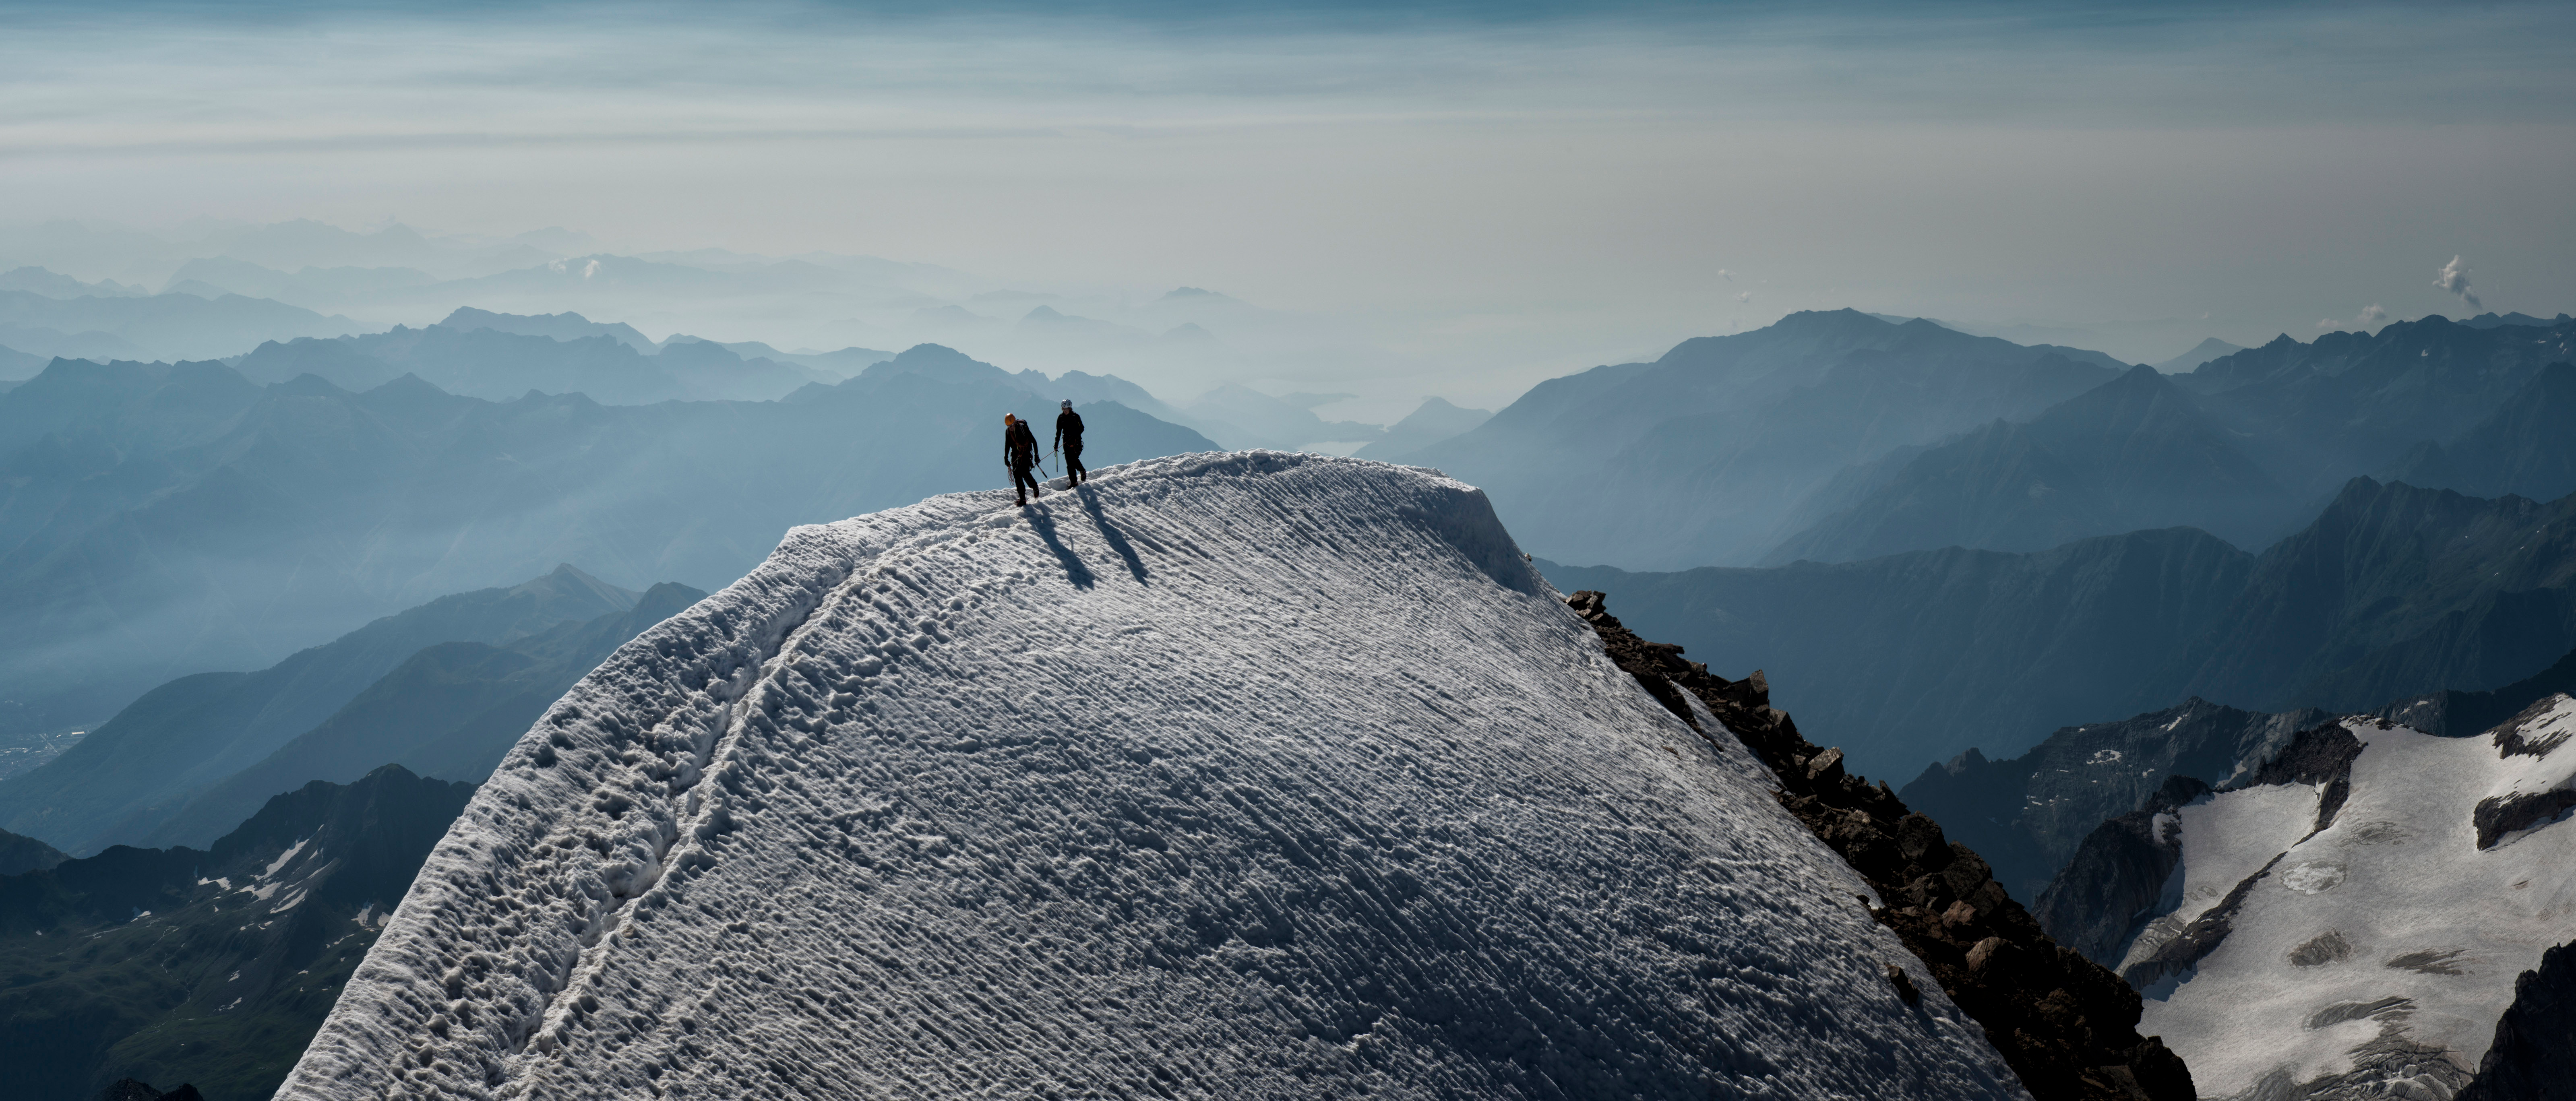 Two people at the crest of a snowy mountain.